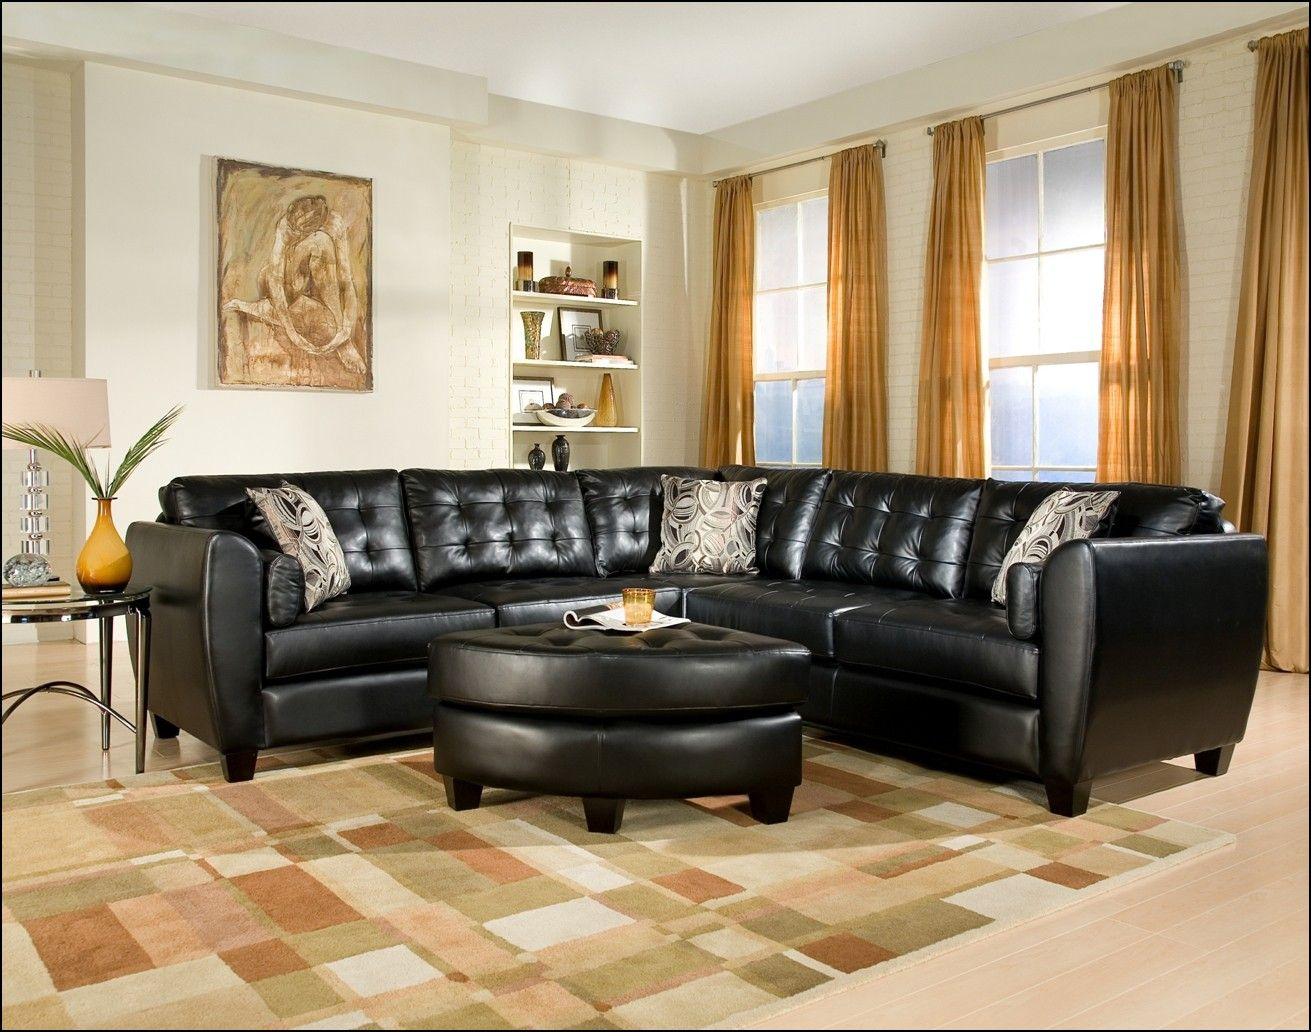 Delicieux Curtains To Go With Black Leather Sofa